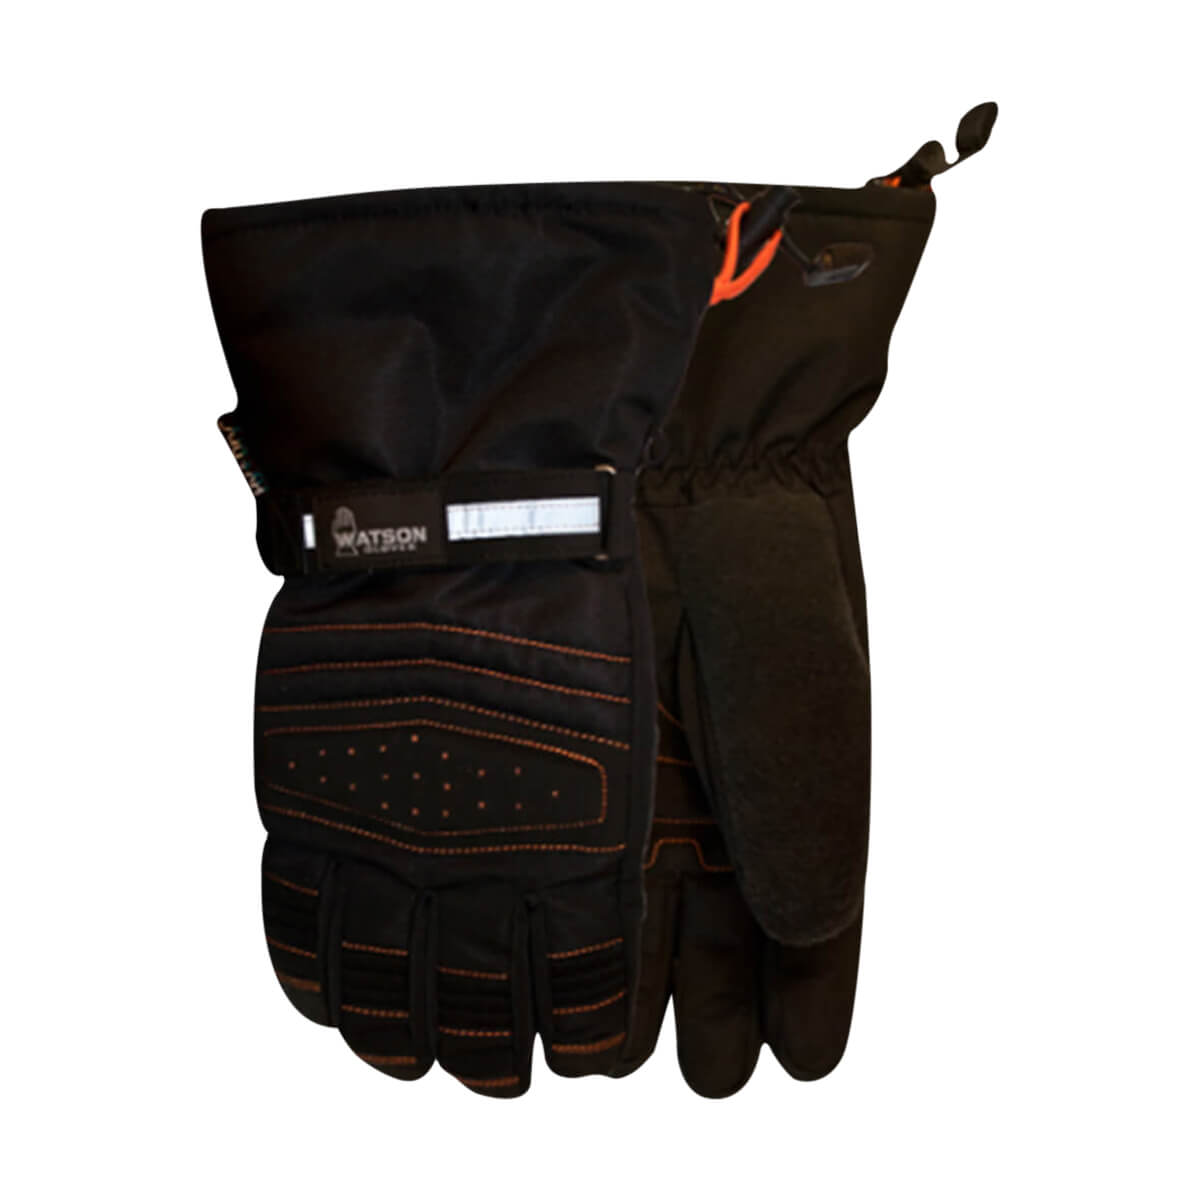 Sno Job Glove